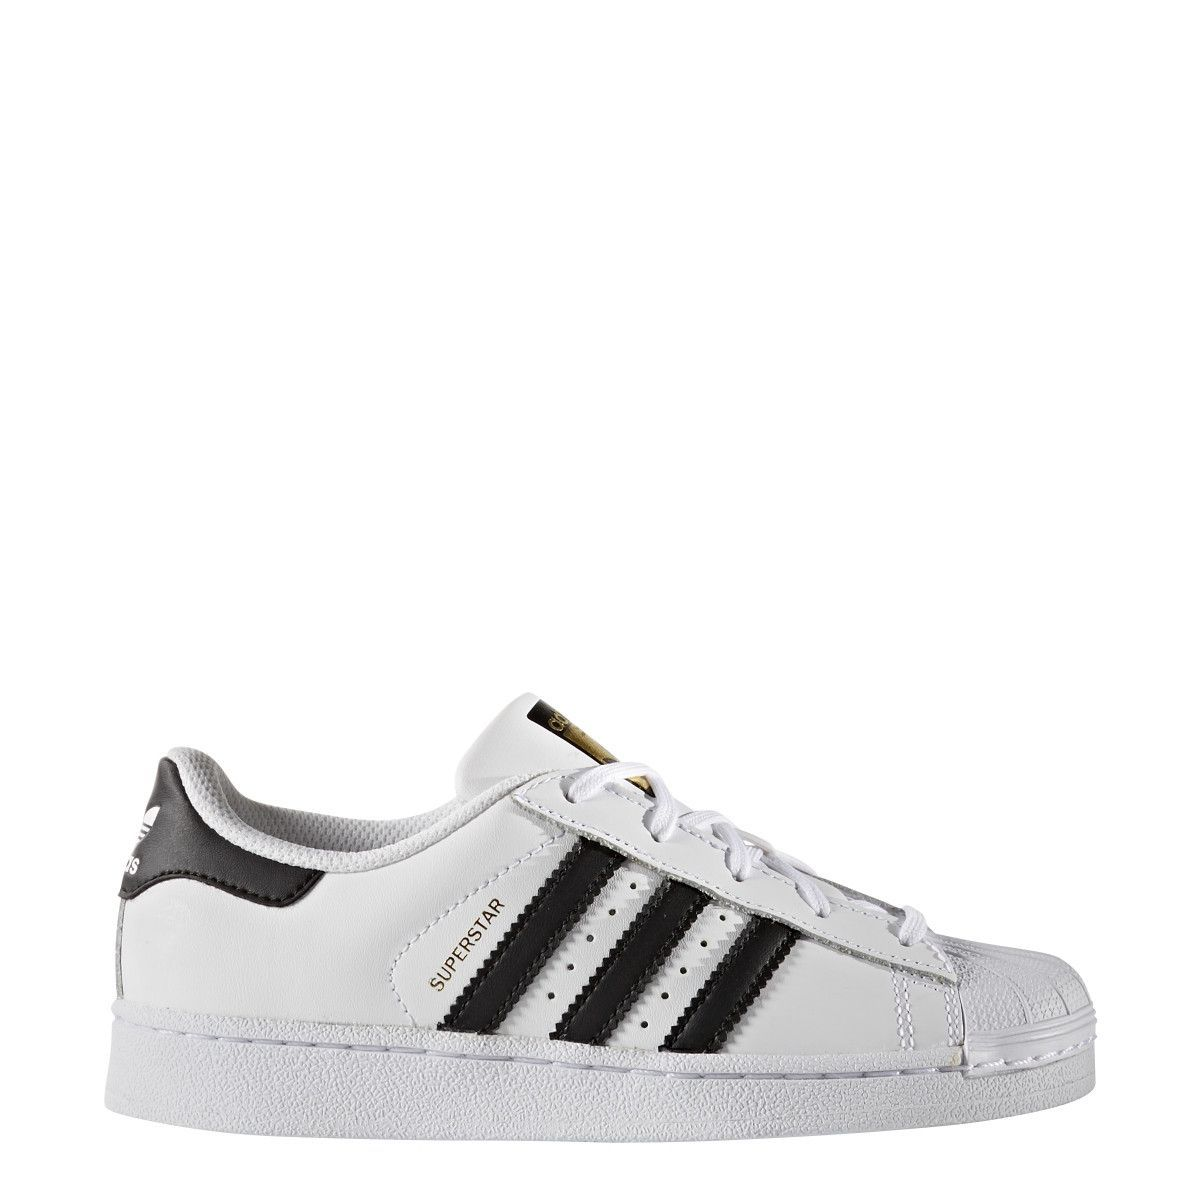 Adidas superstar foundation kids sneakers | Shoes in 2019